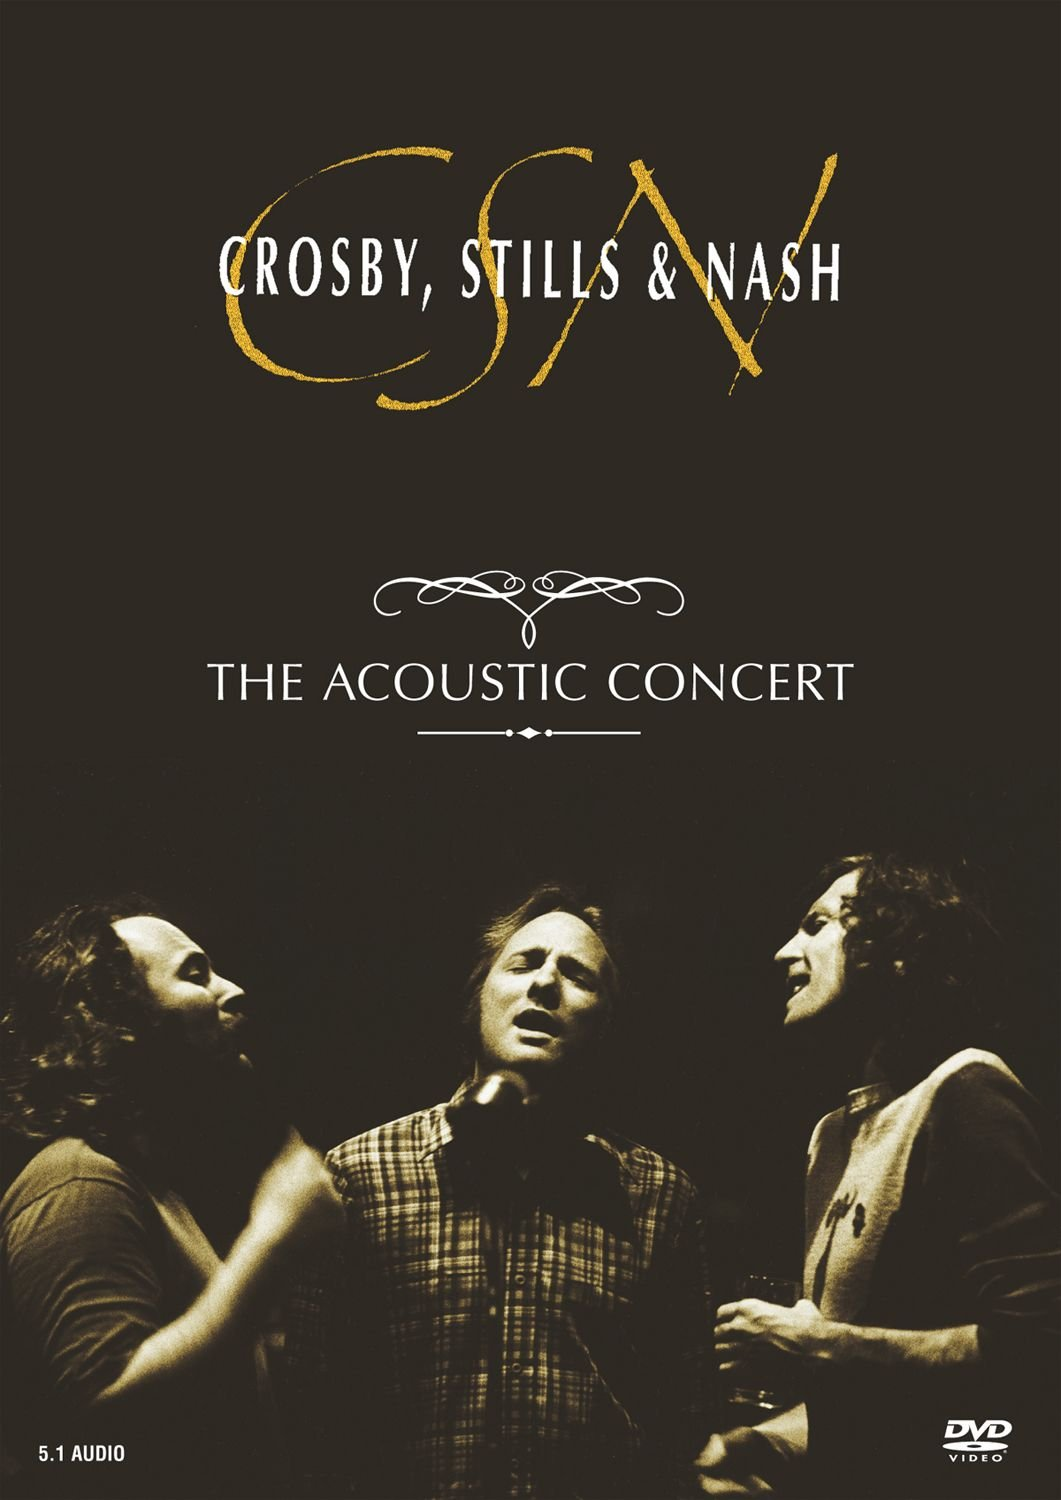 Crosby, Stills & Nash: The Acoustic Concert by WB